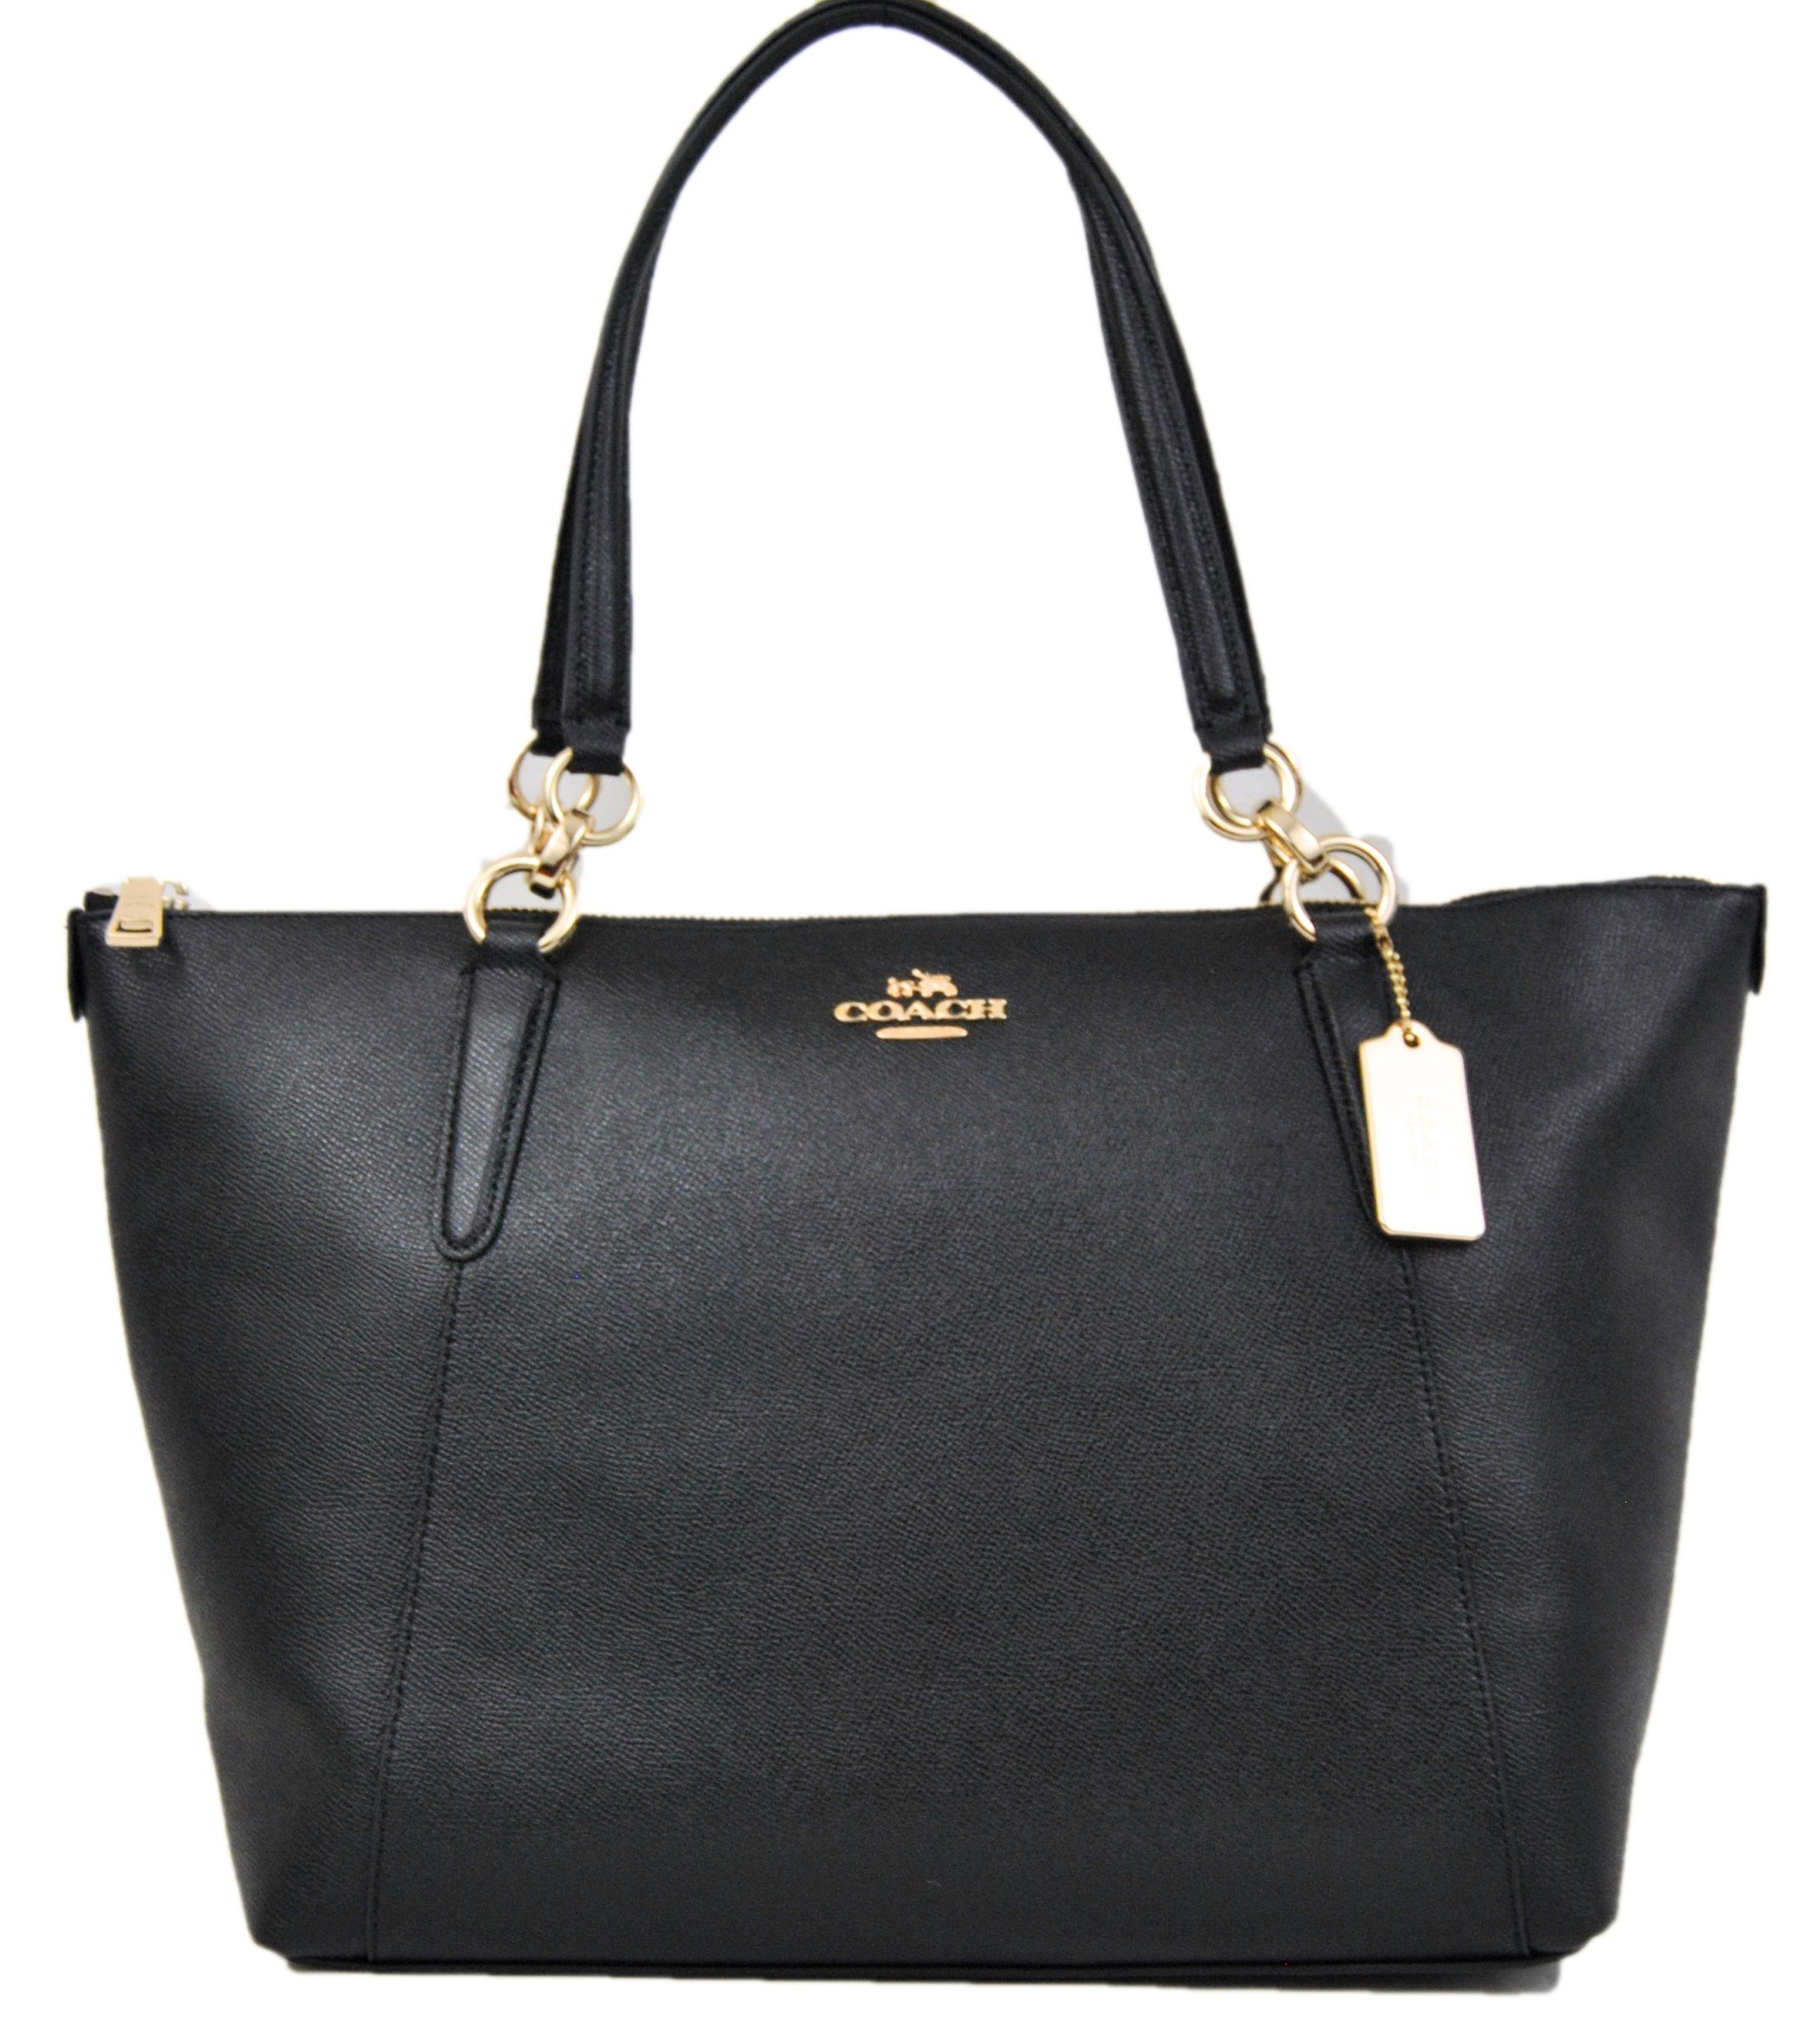 628ca6bb6c2e Get Quotations · COACH Crossgrain Ava Tote Shoulder Bag Black